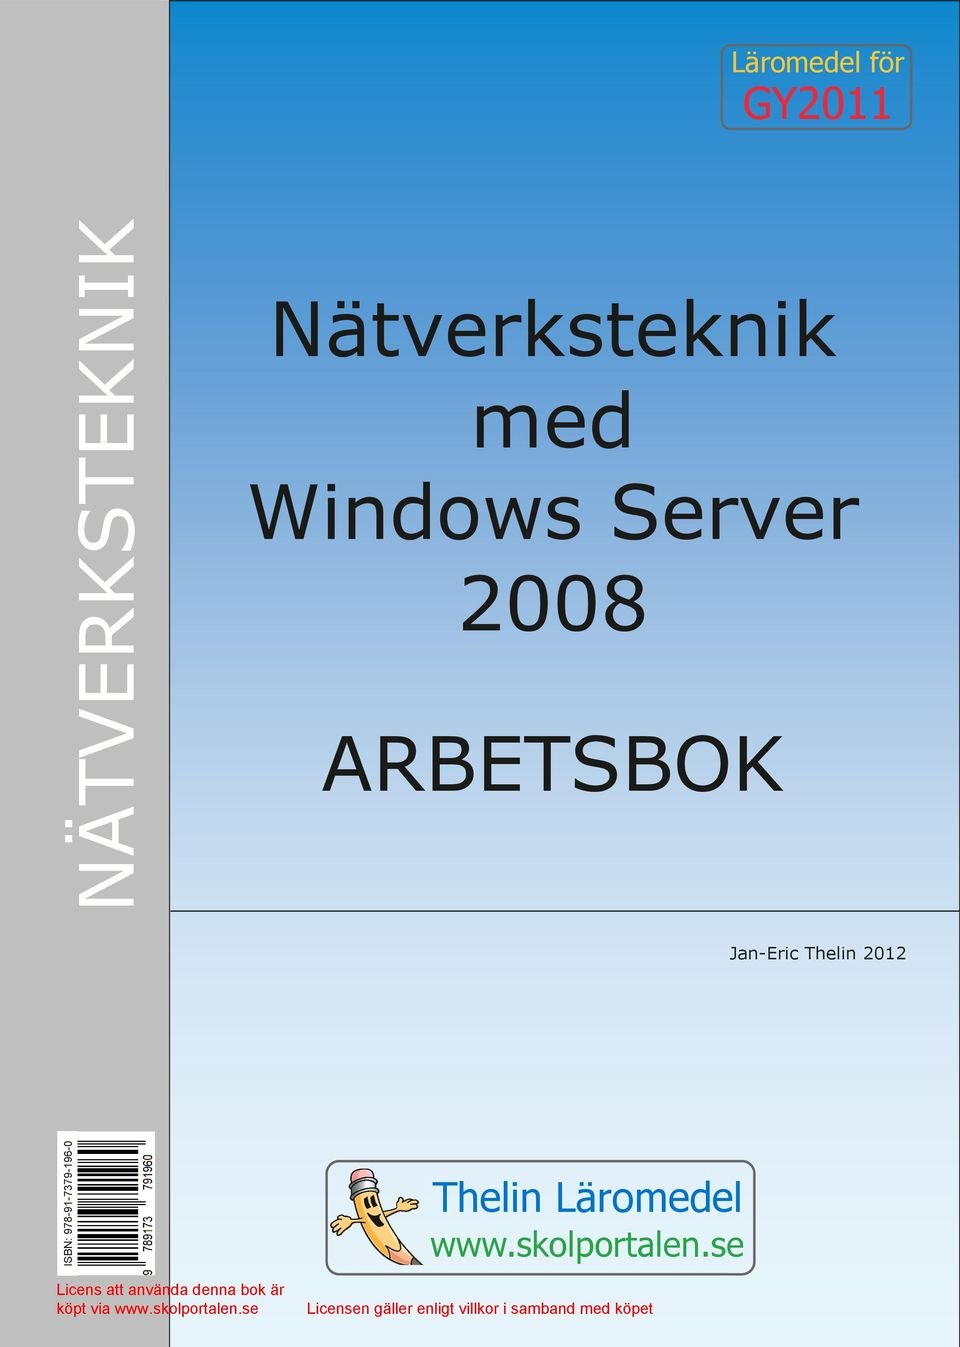 ARBETSBOK Jan-Eric Thelin 2012 ISBN: